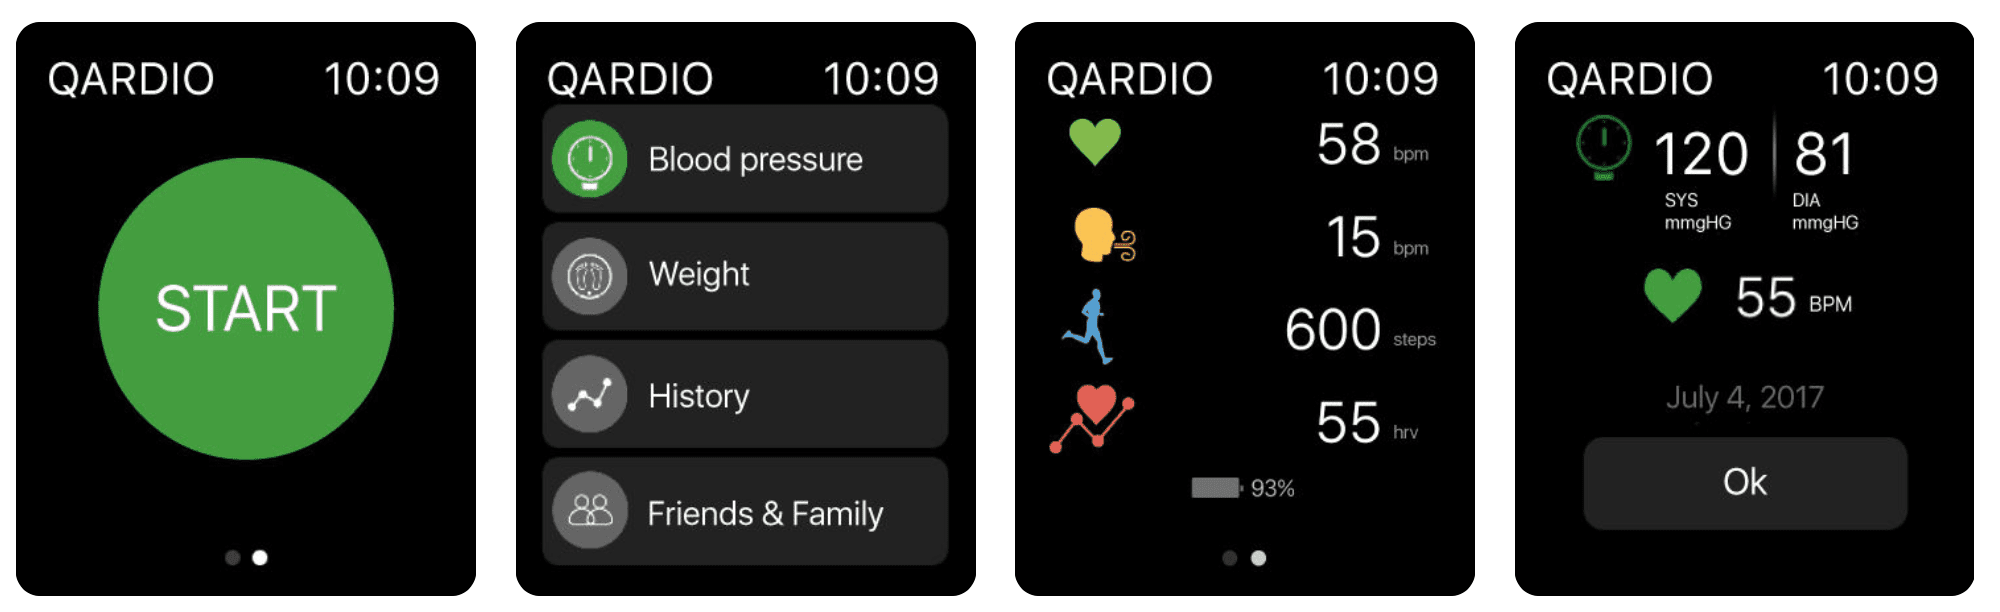 How to Use the Apple Watch's Blood Pressure Feature